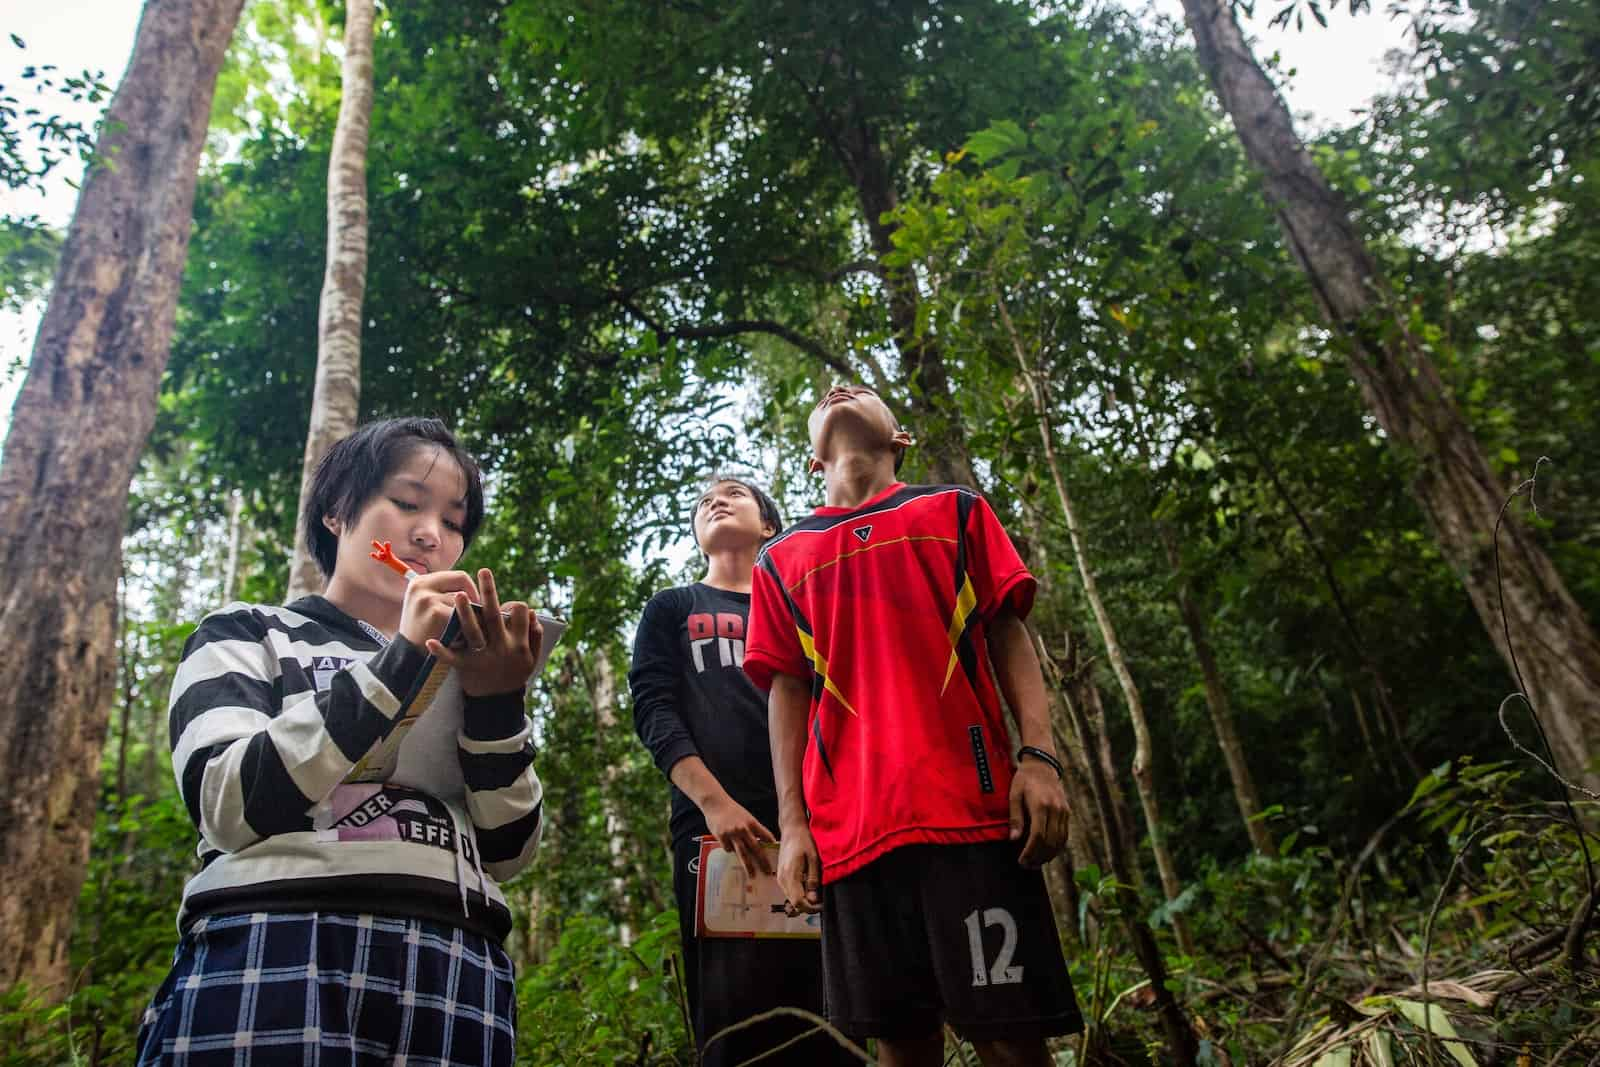 Three teenagers, two girls and a boy, stand in a green forest. One looks down, writing in a book, and two look up at the trees.